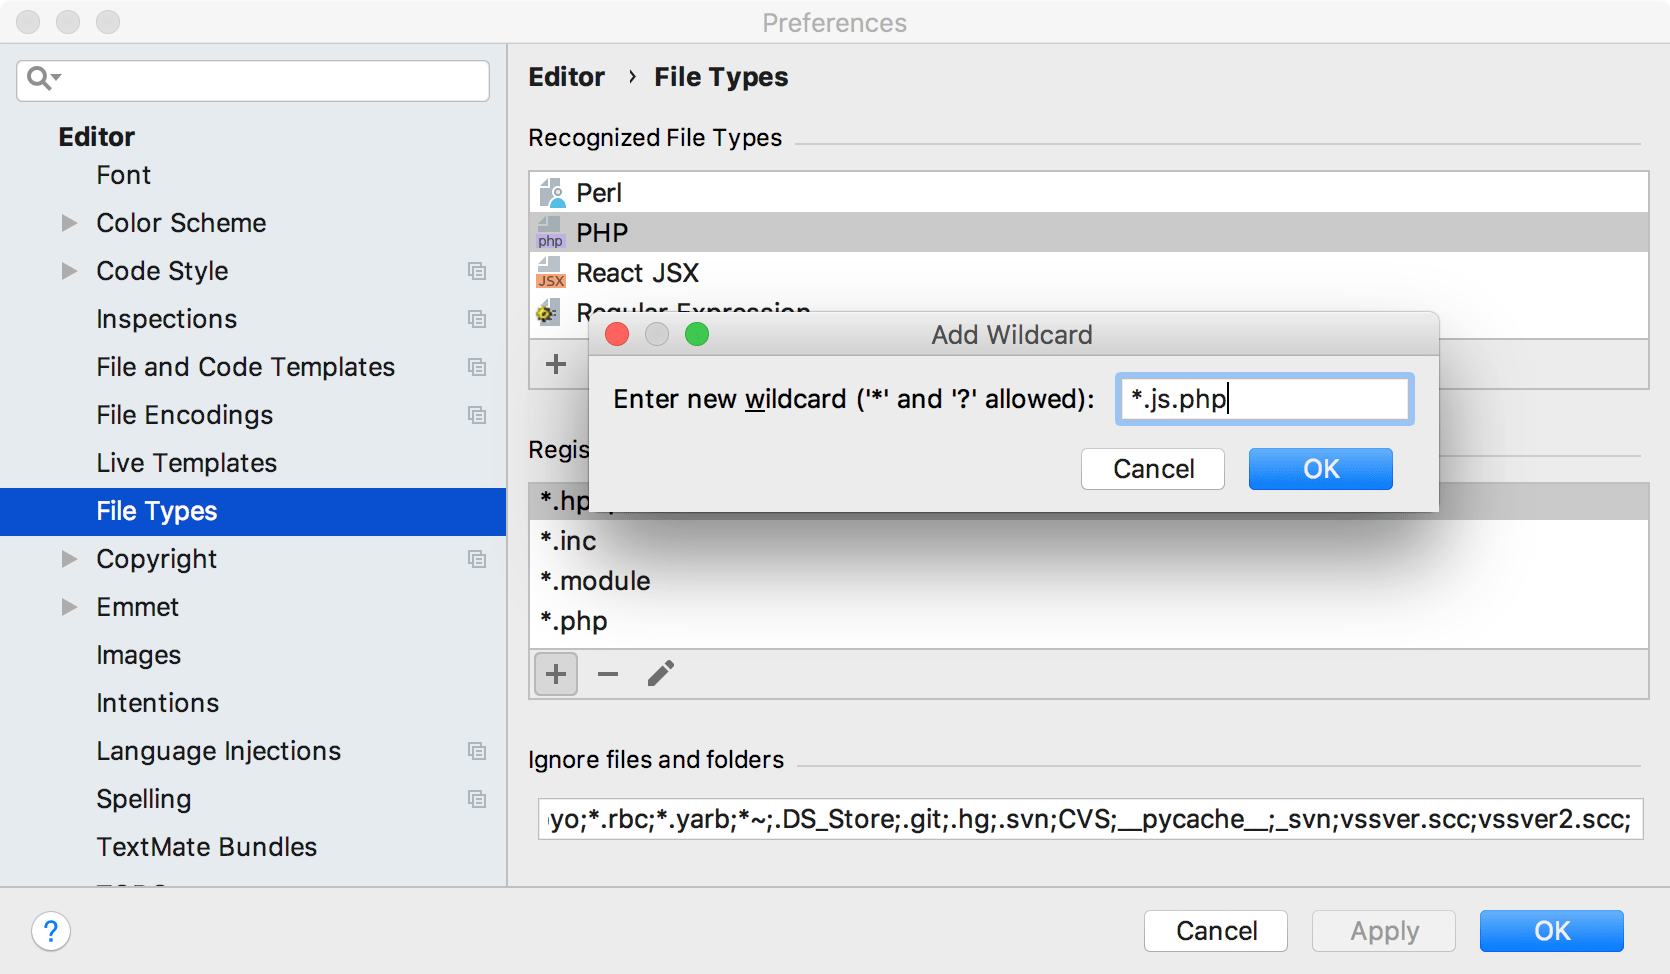 File types settings page